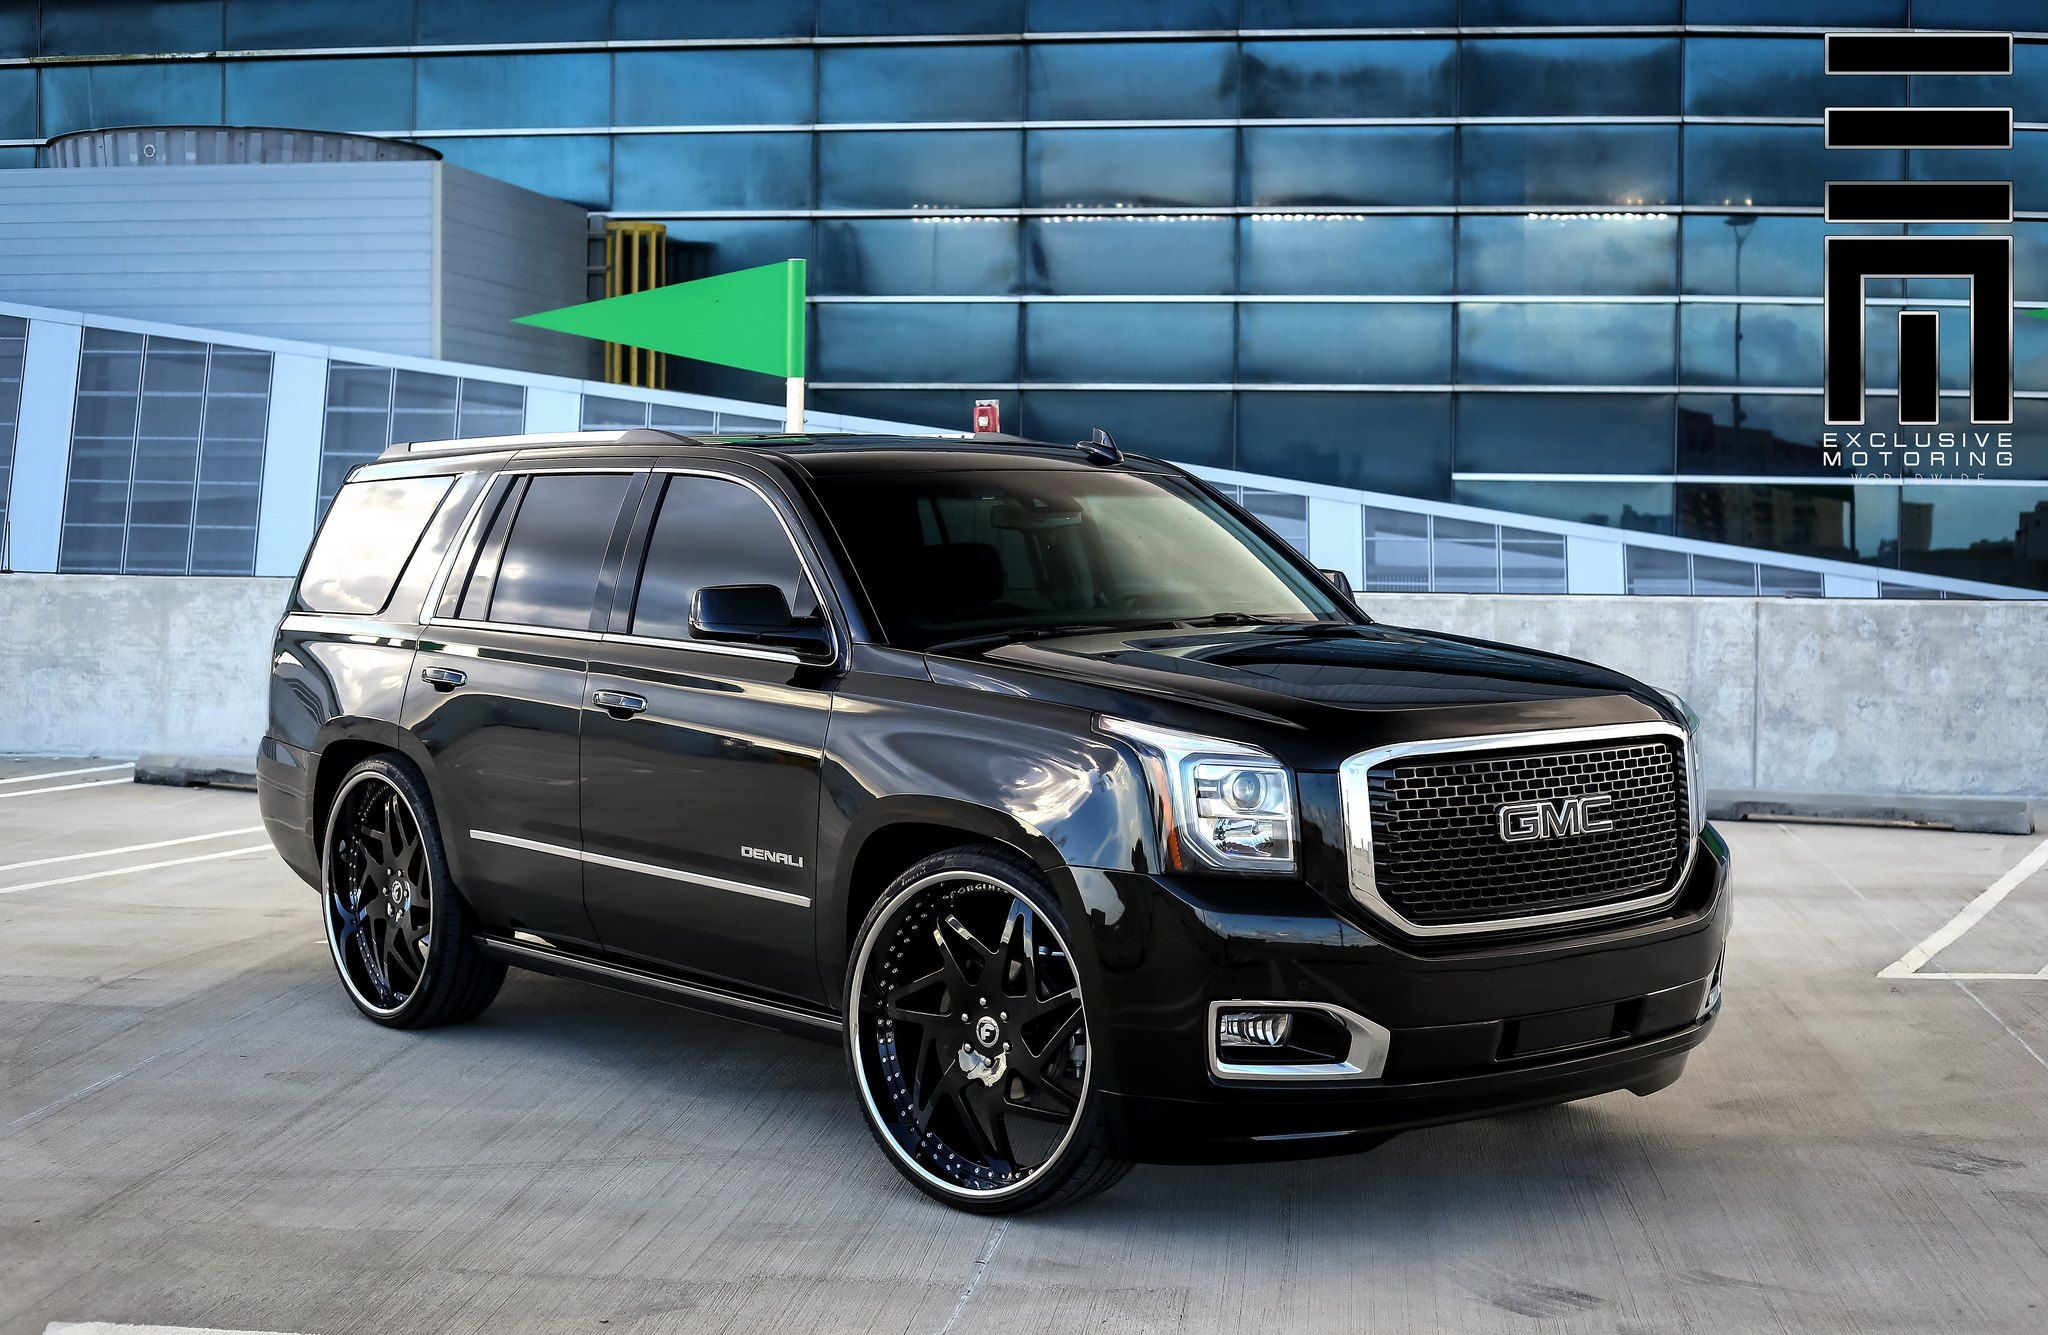 Late Model Yukon Denali On Forgiato Rims By Exclusive Motoring